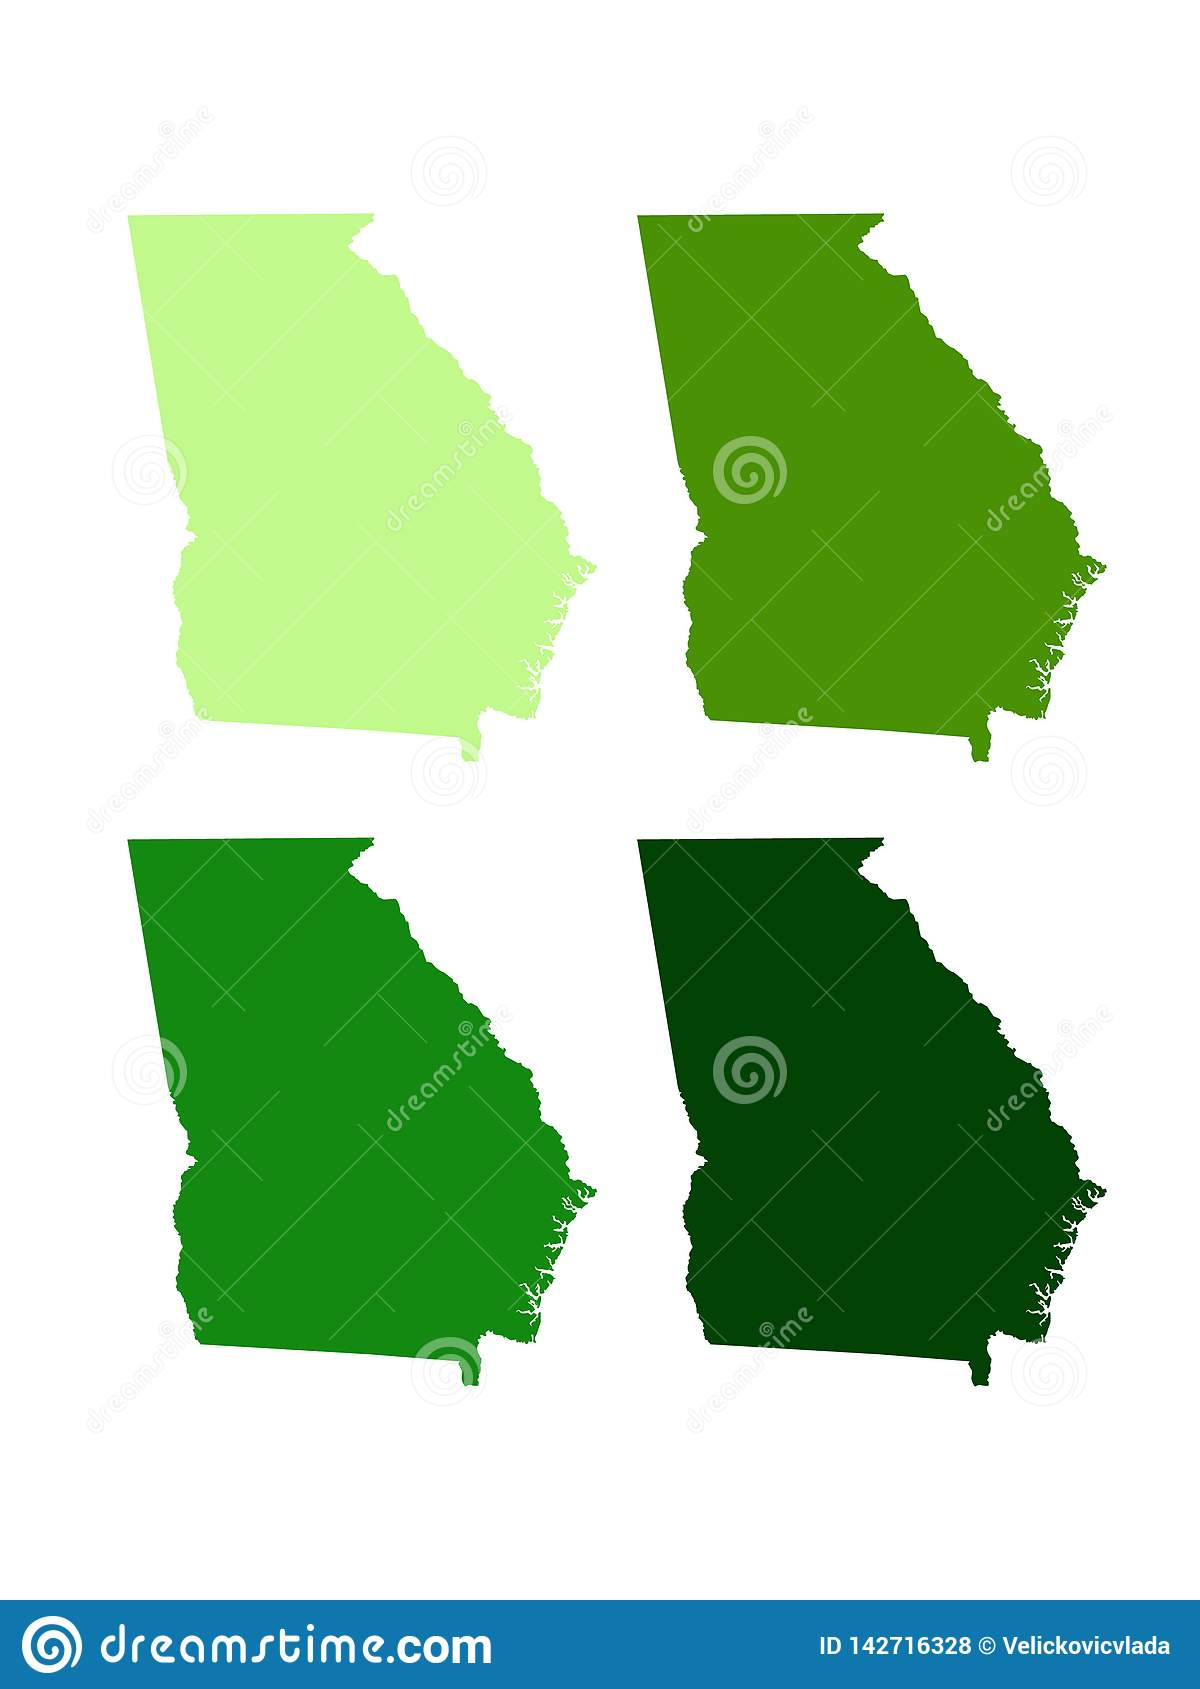 Georgia U. S. State Map - State In The Southeastern United ... on mississippi's state map, georgia state parks map, florida's state map, georgia's nature, california's state map, georgia's golden coast, alabama's state map, iowa's state map, georgia state natural resource map, state of georgia county map, savannah georgia state map, georgia's 13th congressional district, oregon's state map, georgia state capital map, georgia's population of people, michigan's state map, kentucky's state map, georgia's history, washington's state map, georgia's 1st congressional district,